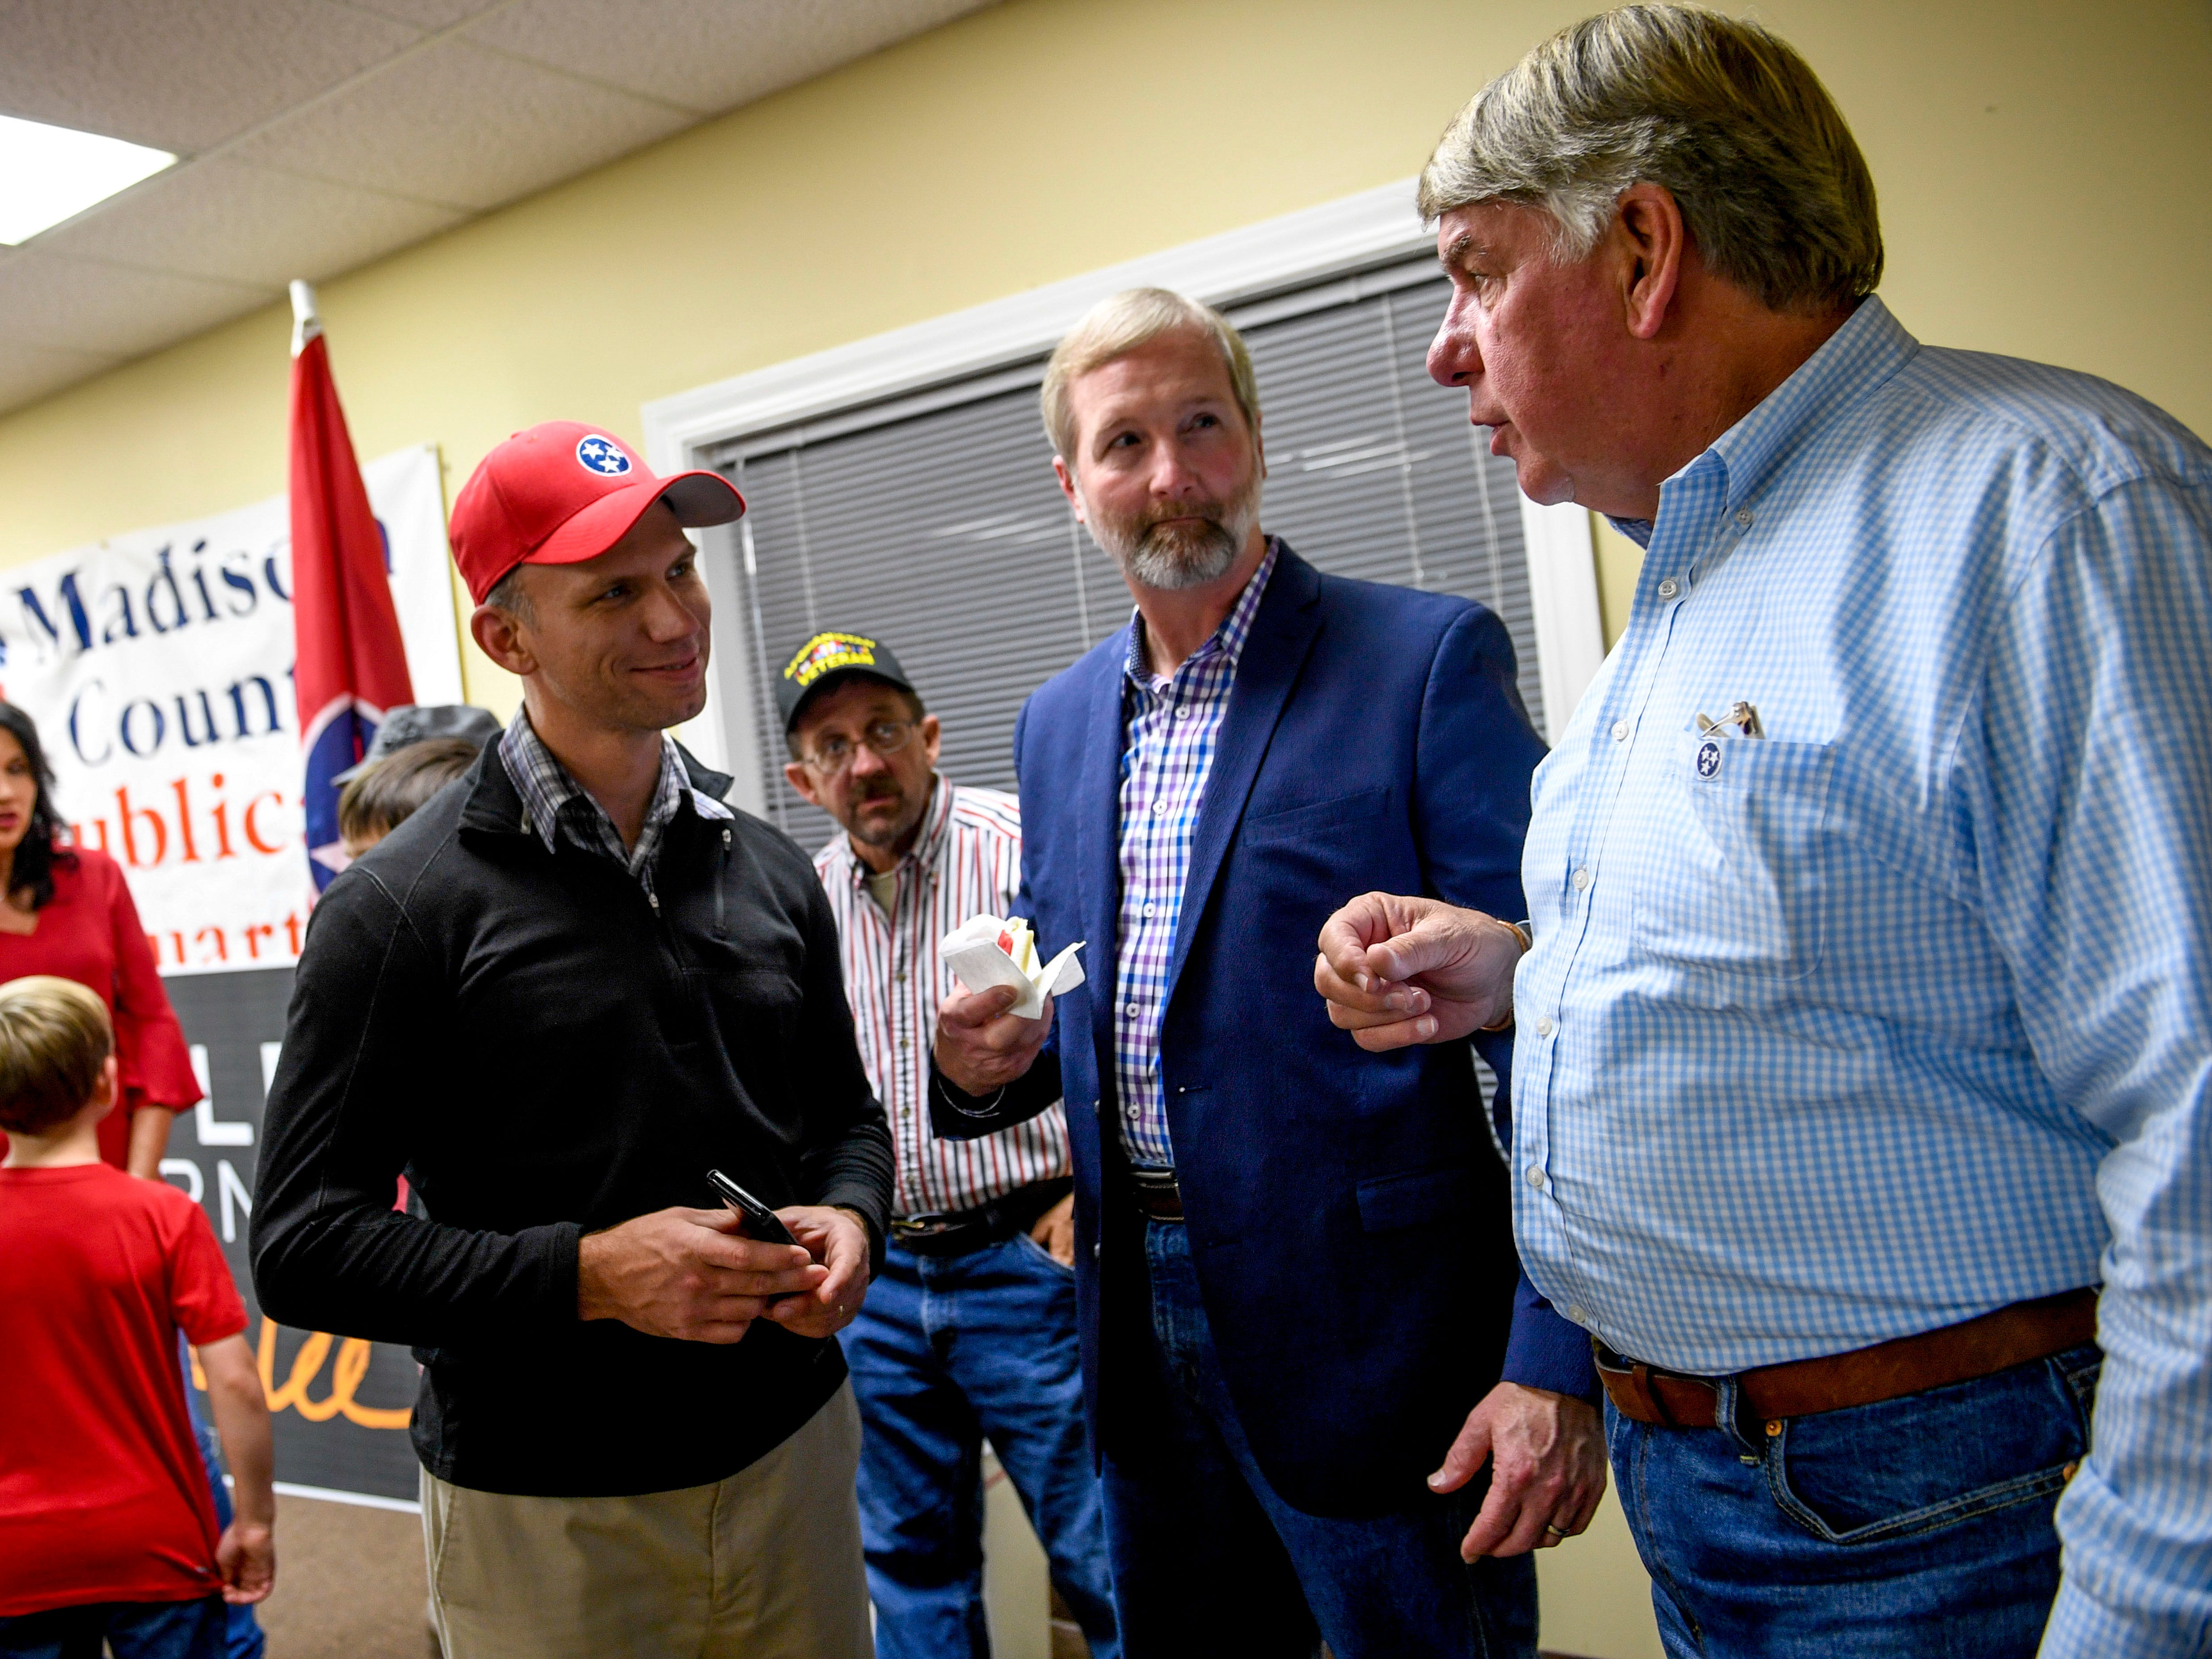 State Senator for District 27 Ed Jackson, right, speaks with Chris Todd, center, and Glen Gaugh, left, during an election night watch party at Madison County Republican Headquarters in Jackson, Tenn., on Tuesday, Nov. 6, 2018.